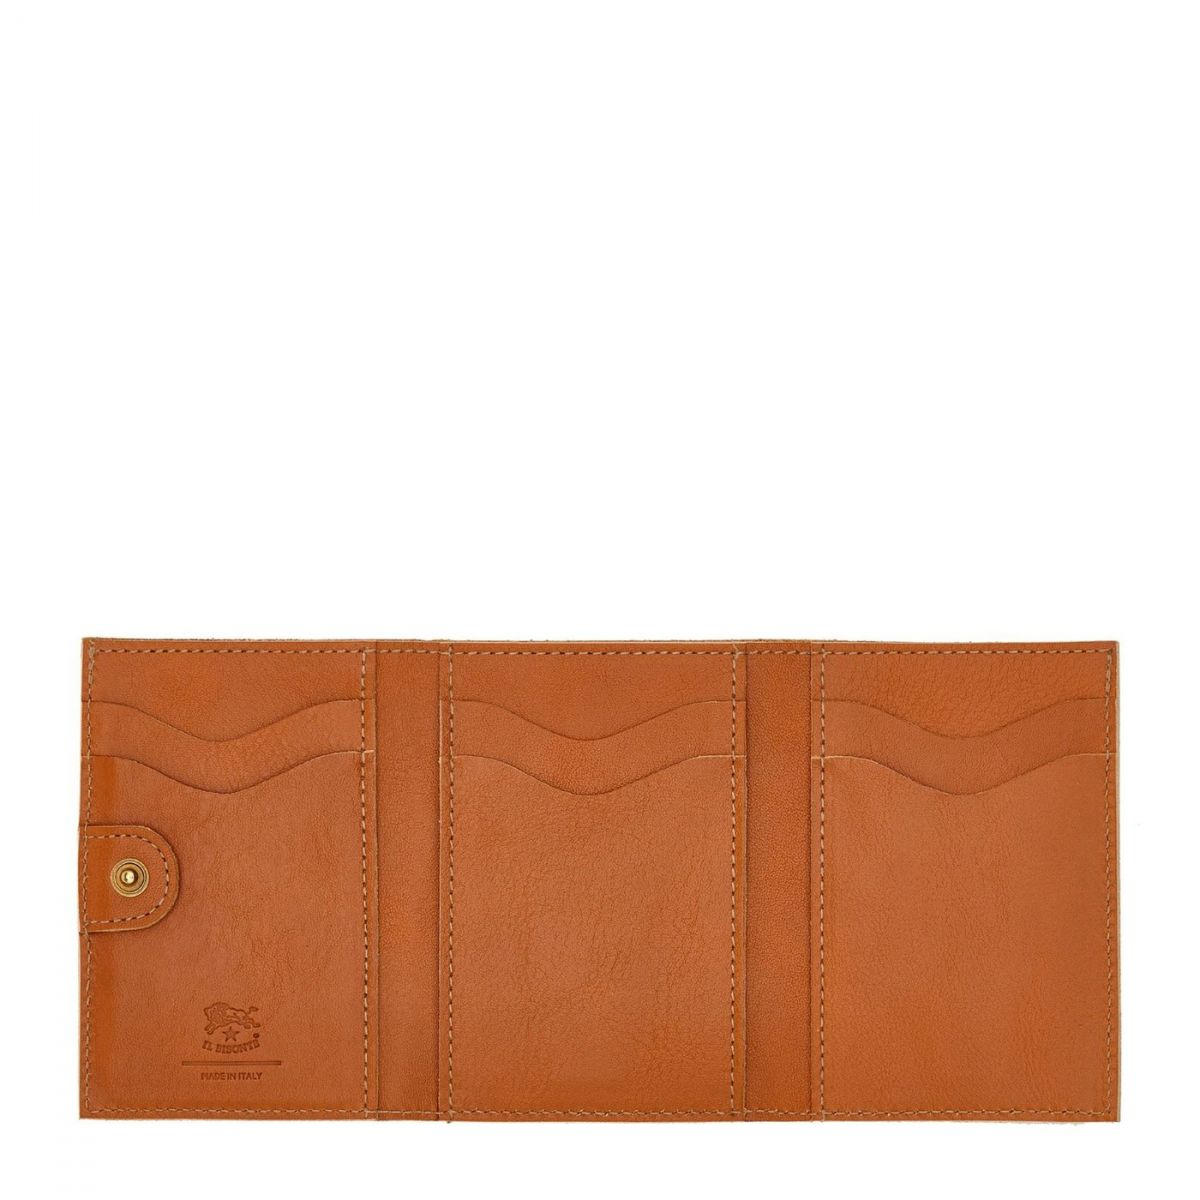 Women's Wallet  in Cowhide Leather SMW098 color Caramel | Details